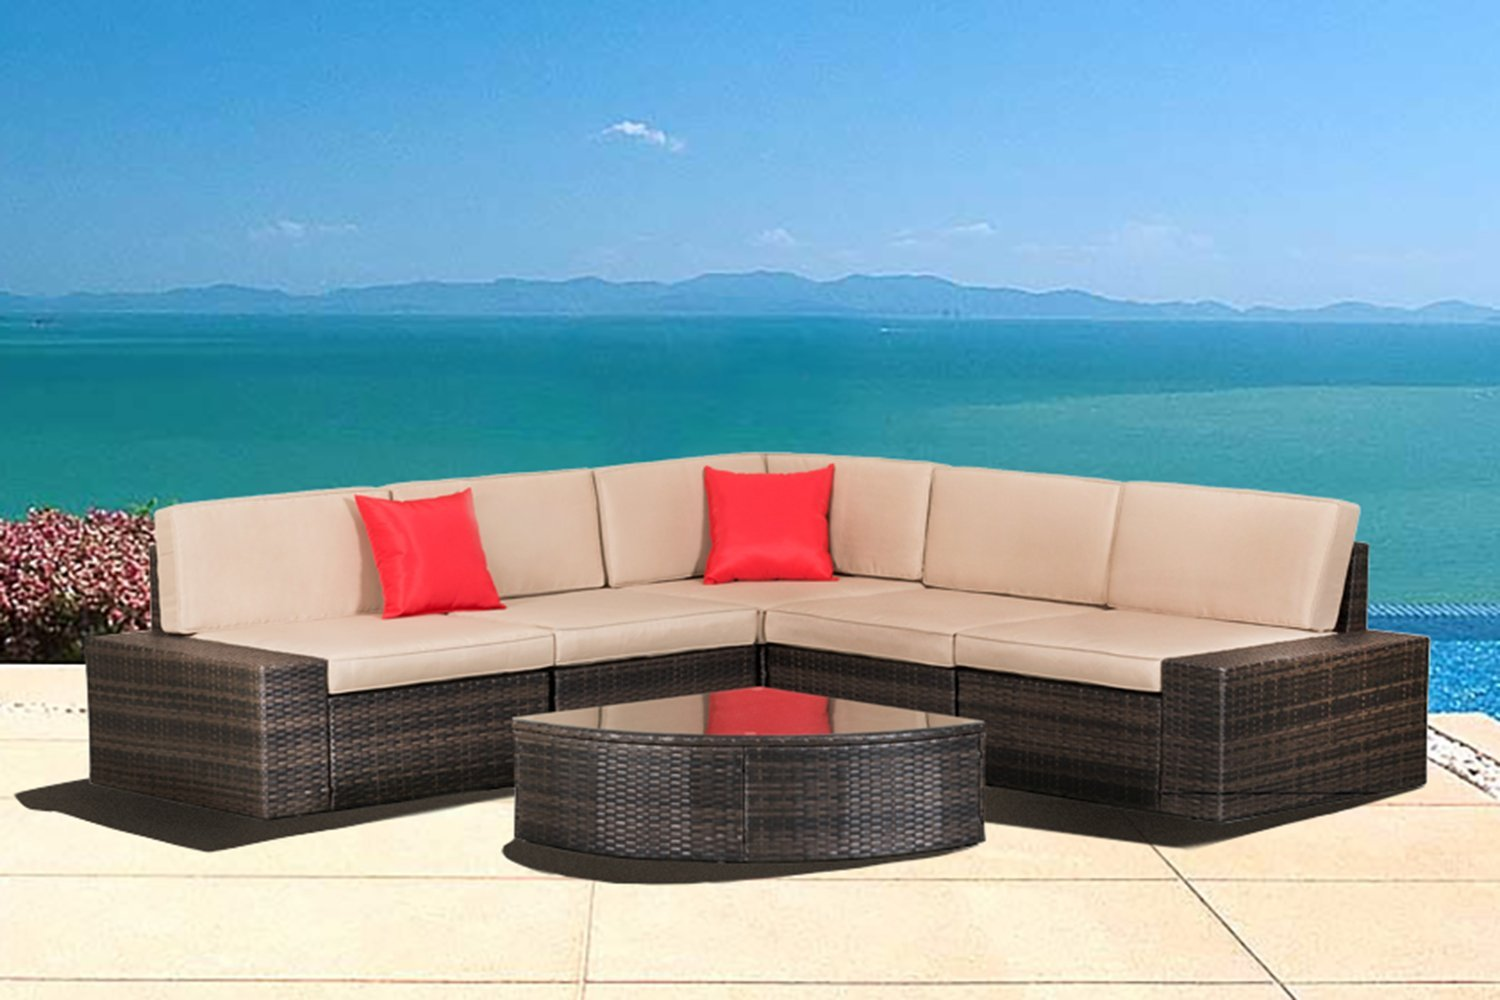 OUTROAD 6 piece Wicker Sectional Sofa Set - All Weather Brown Striped Outdoor Patio Furniture W/ Washable Cushions & Sector Glass Top Coffee Table | Incl. Waterproof Cover & Necessary tools